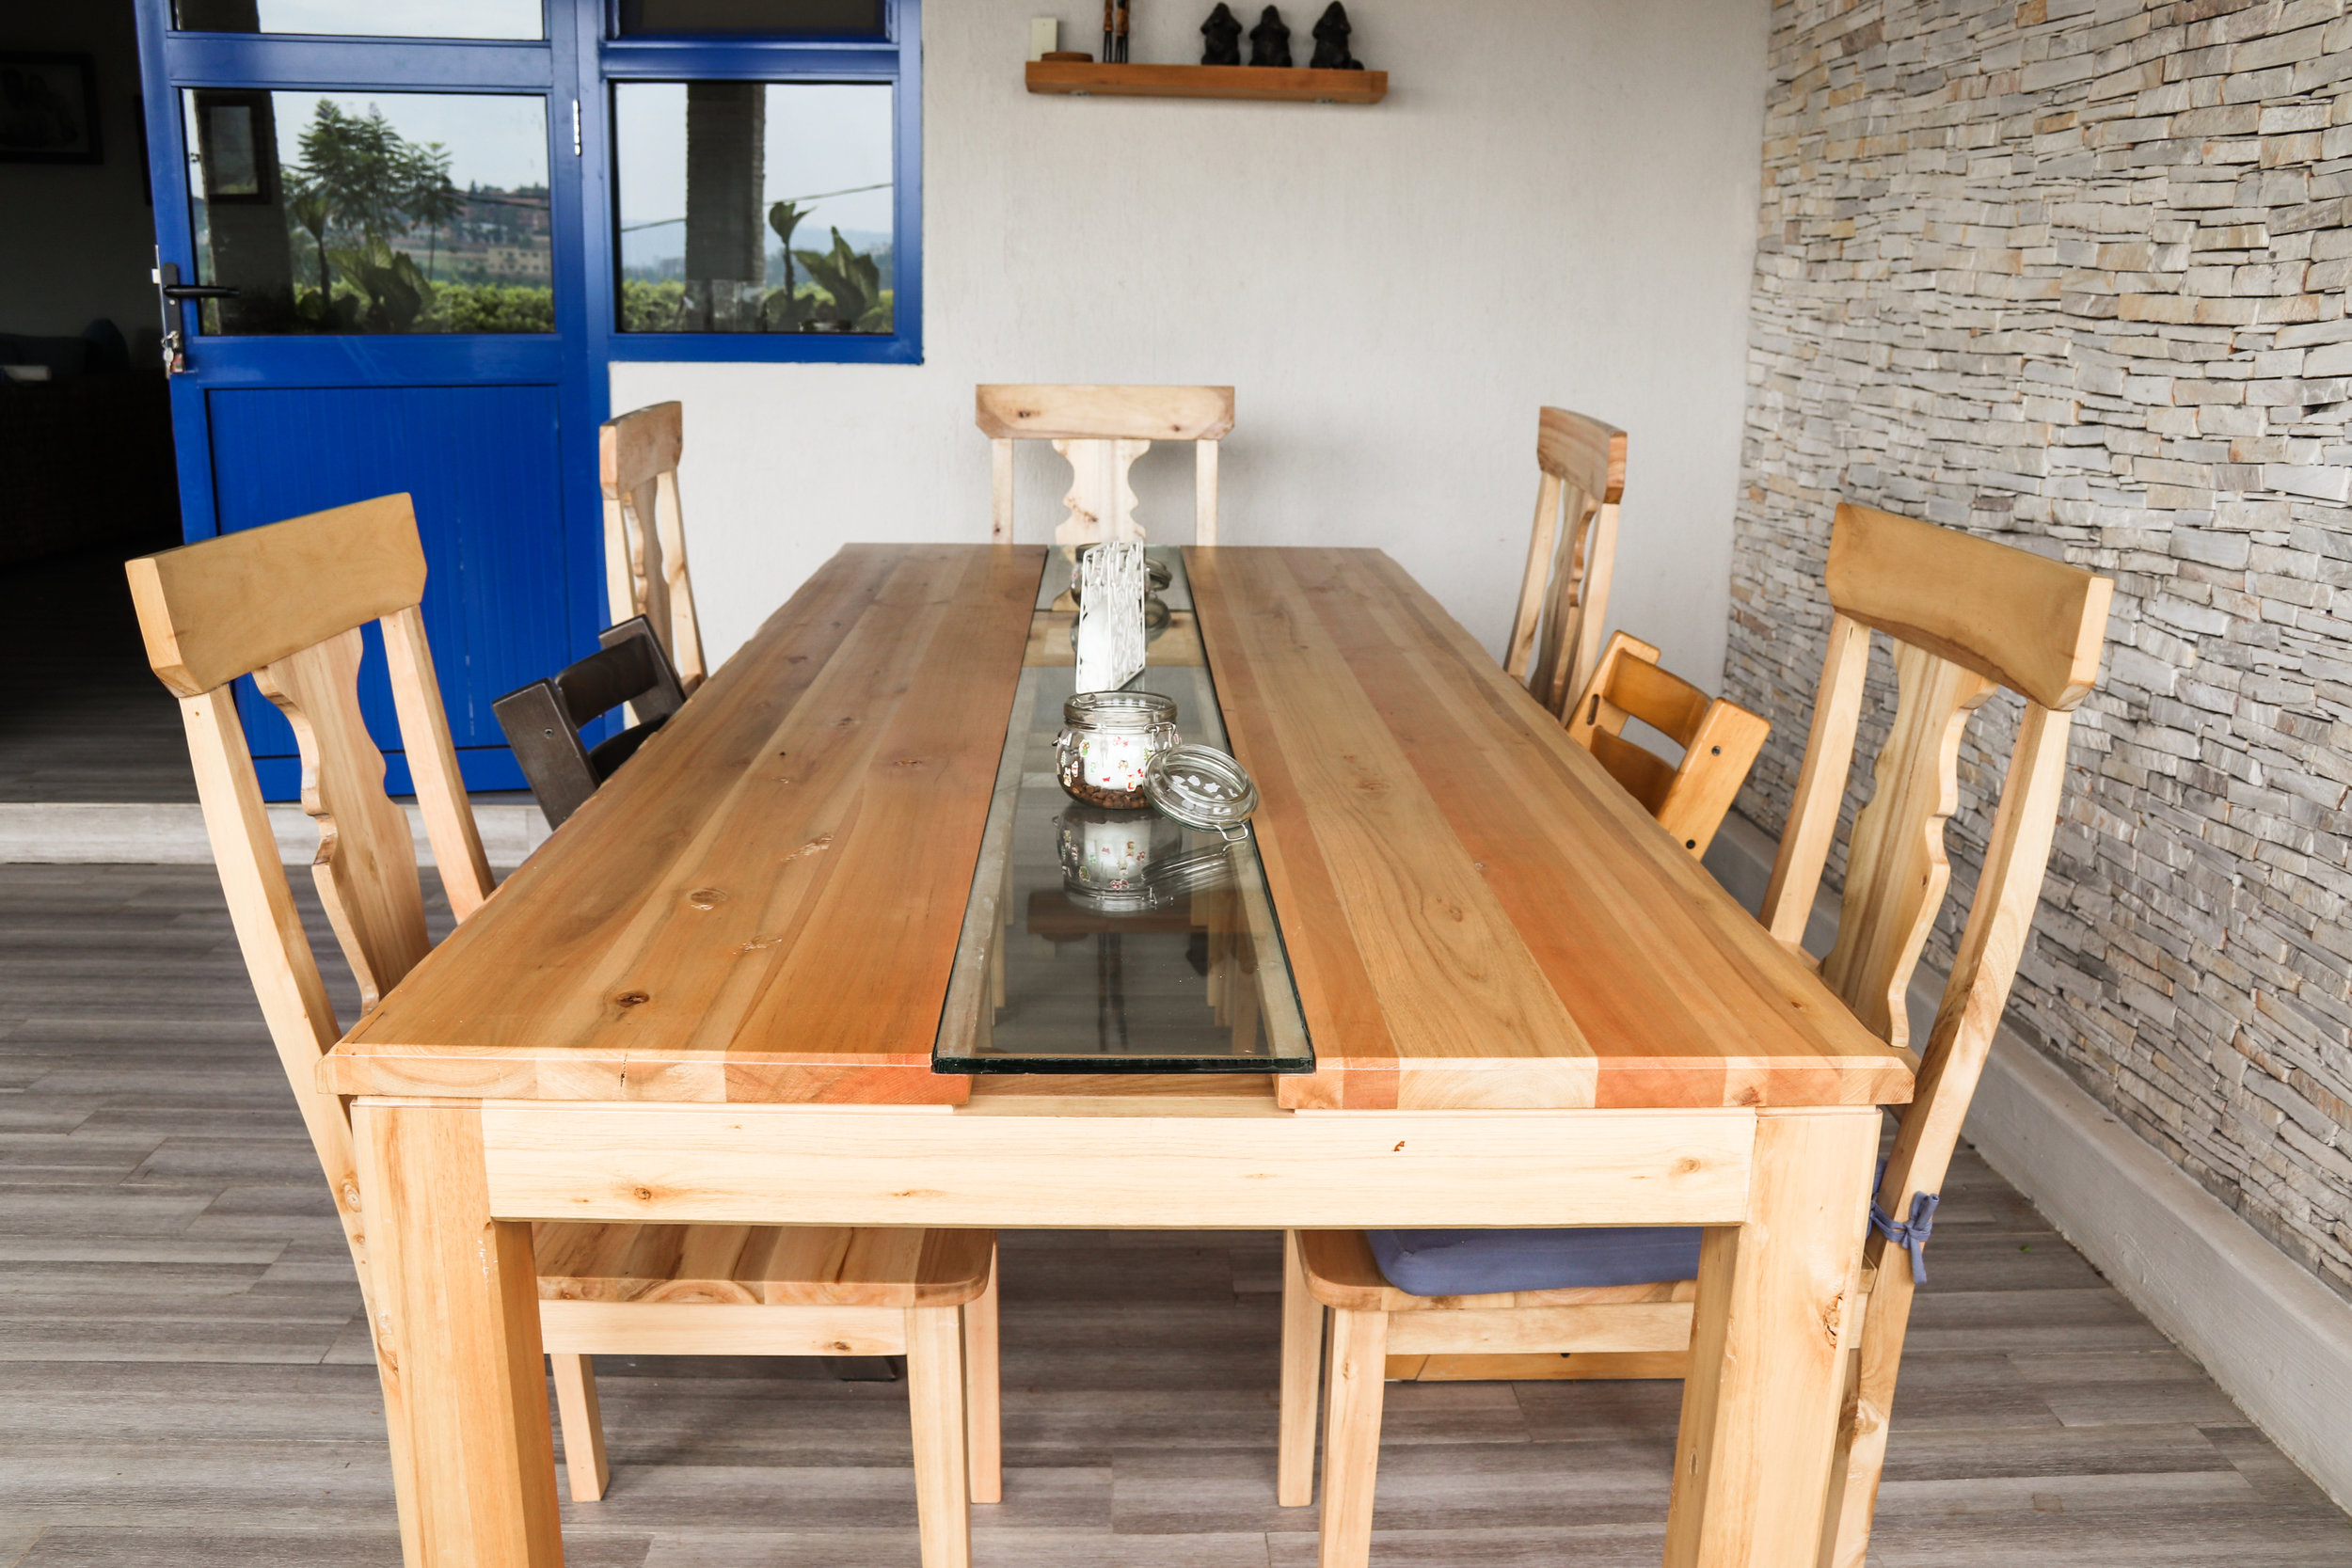 6 Seater dining set in white eucalyptus and glass inray